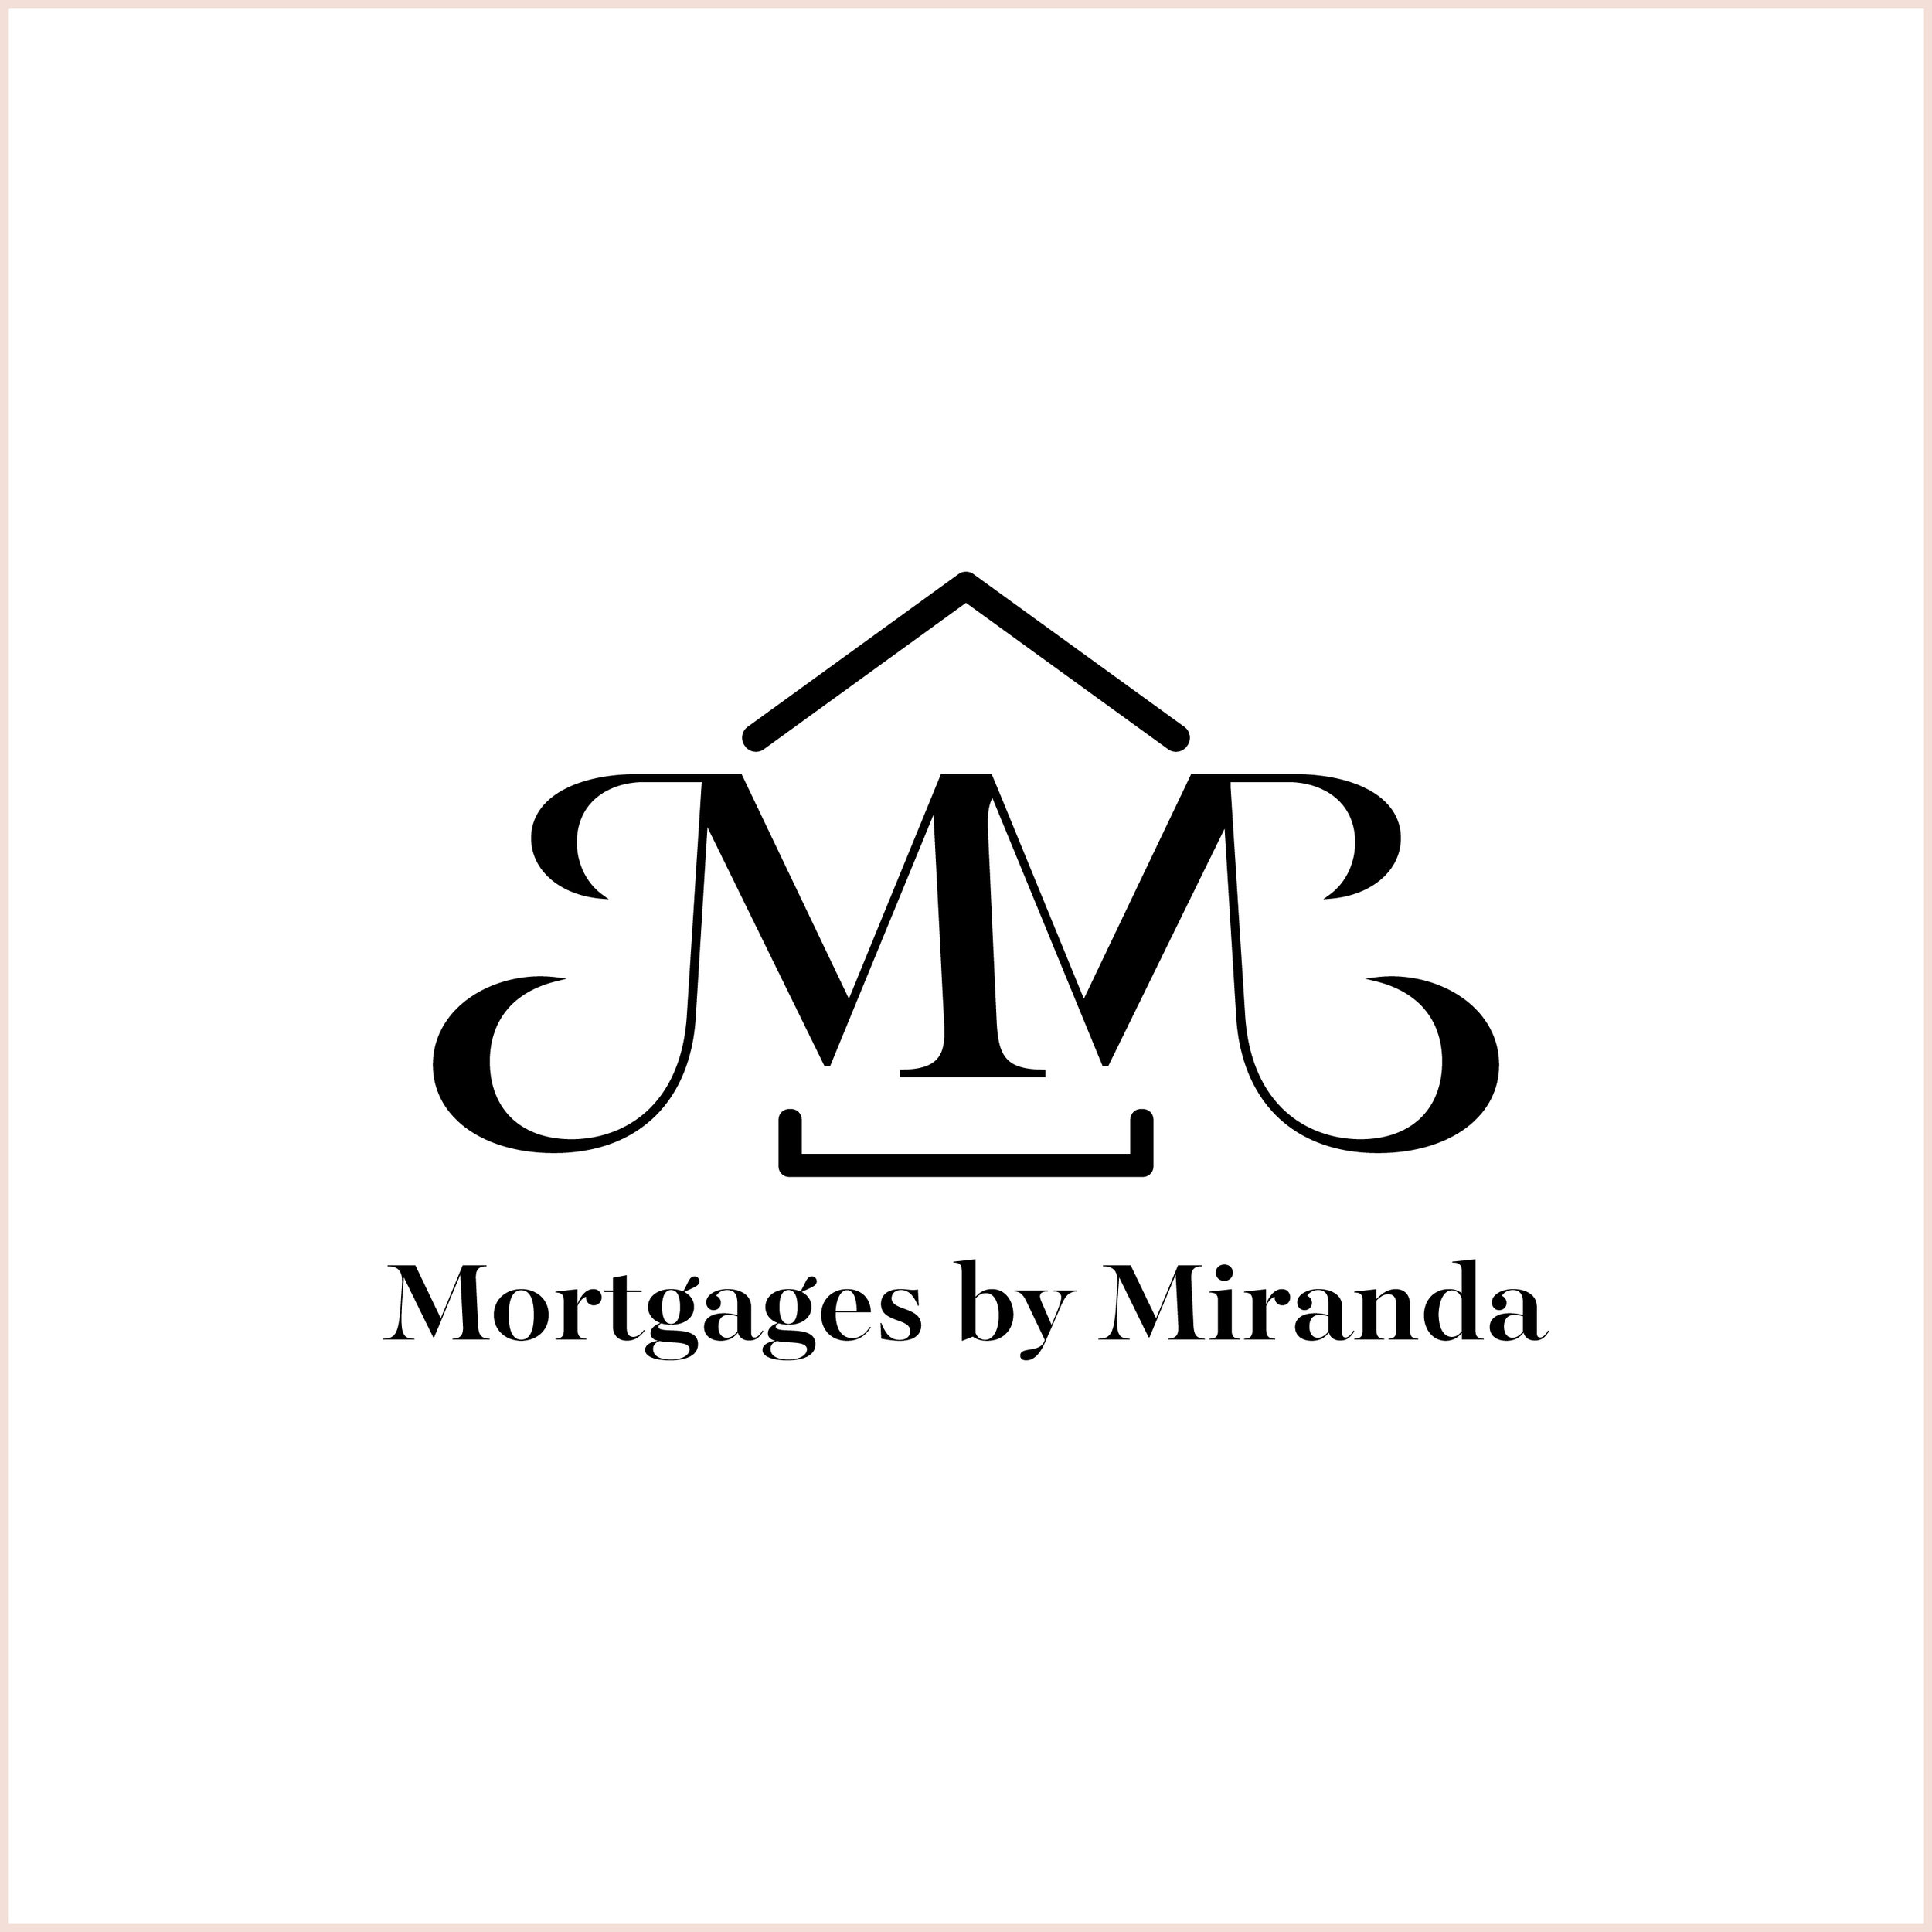 10-mortgagesbymiranda.jpg